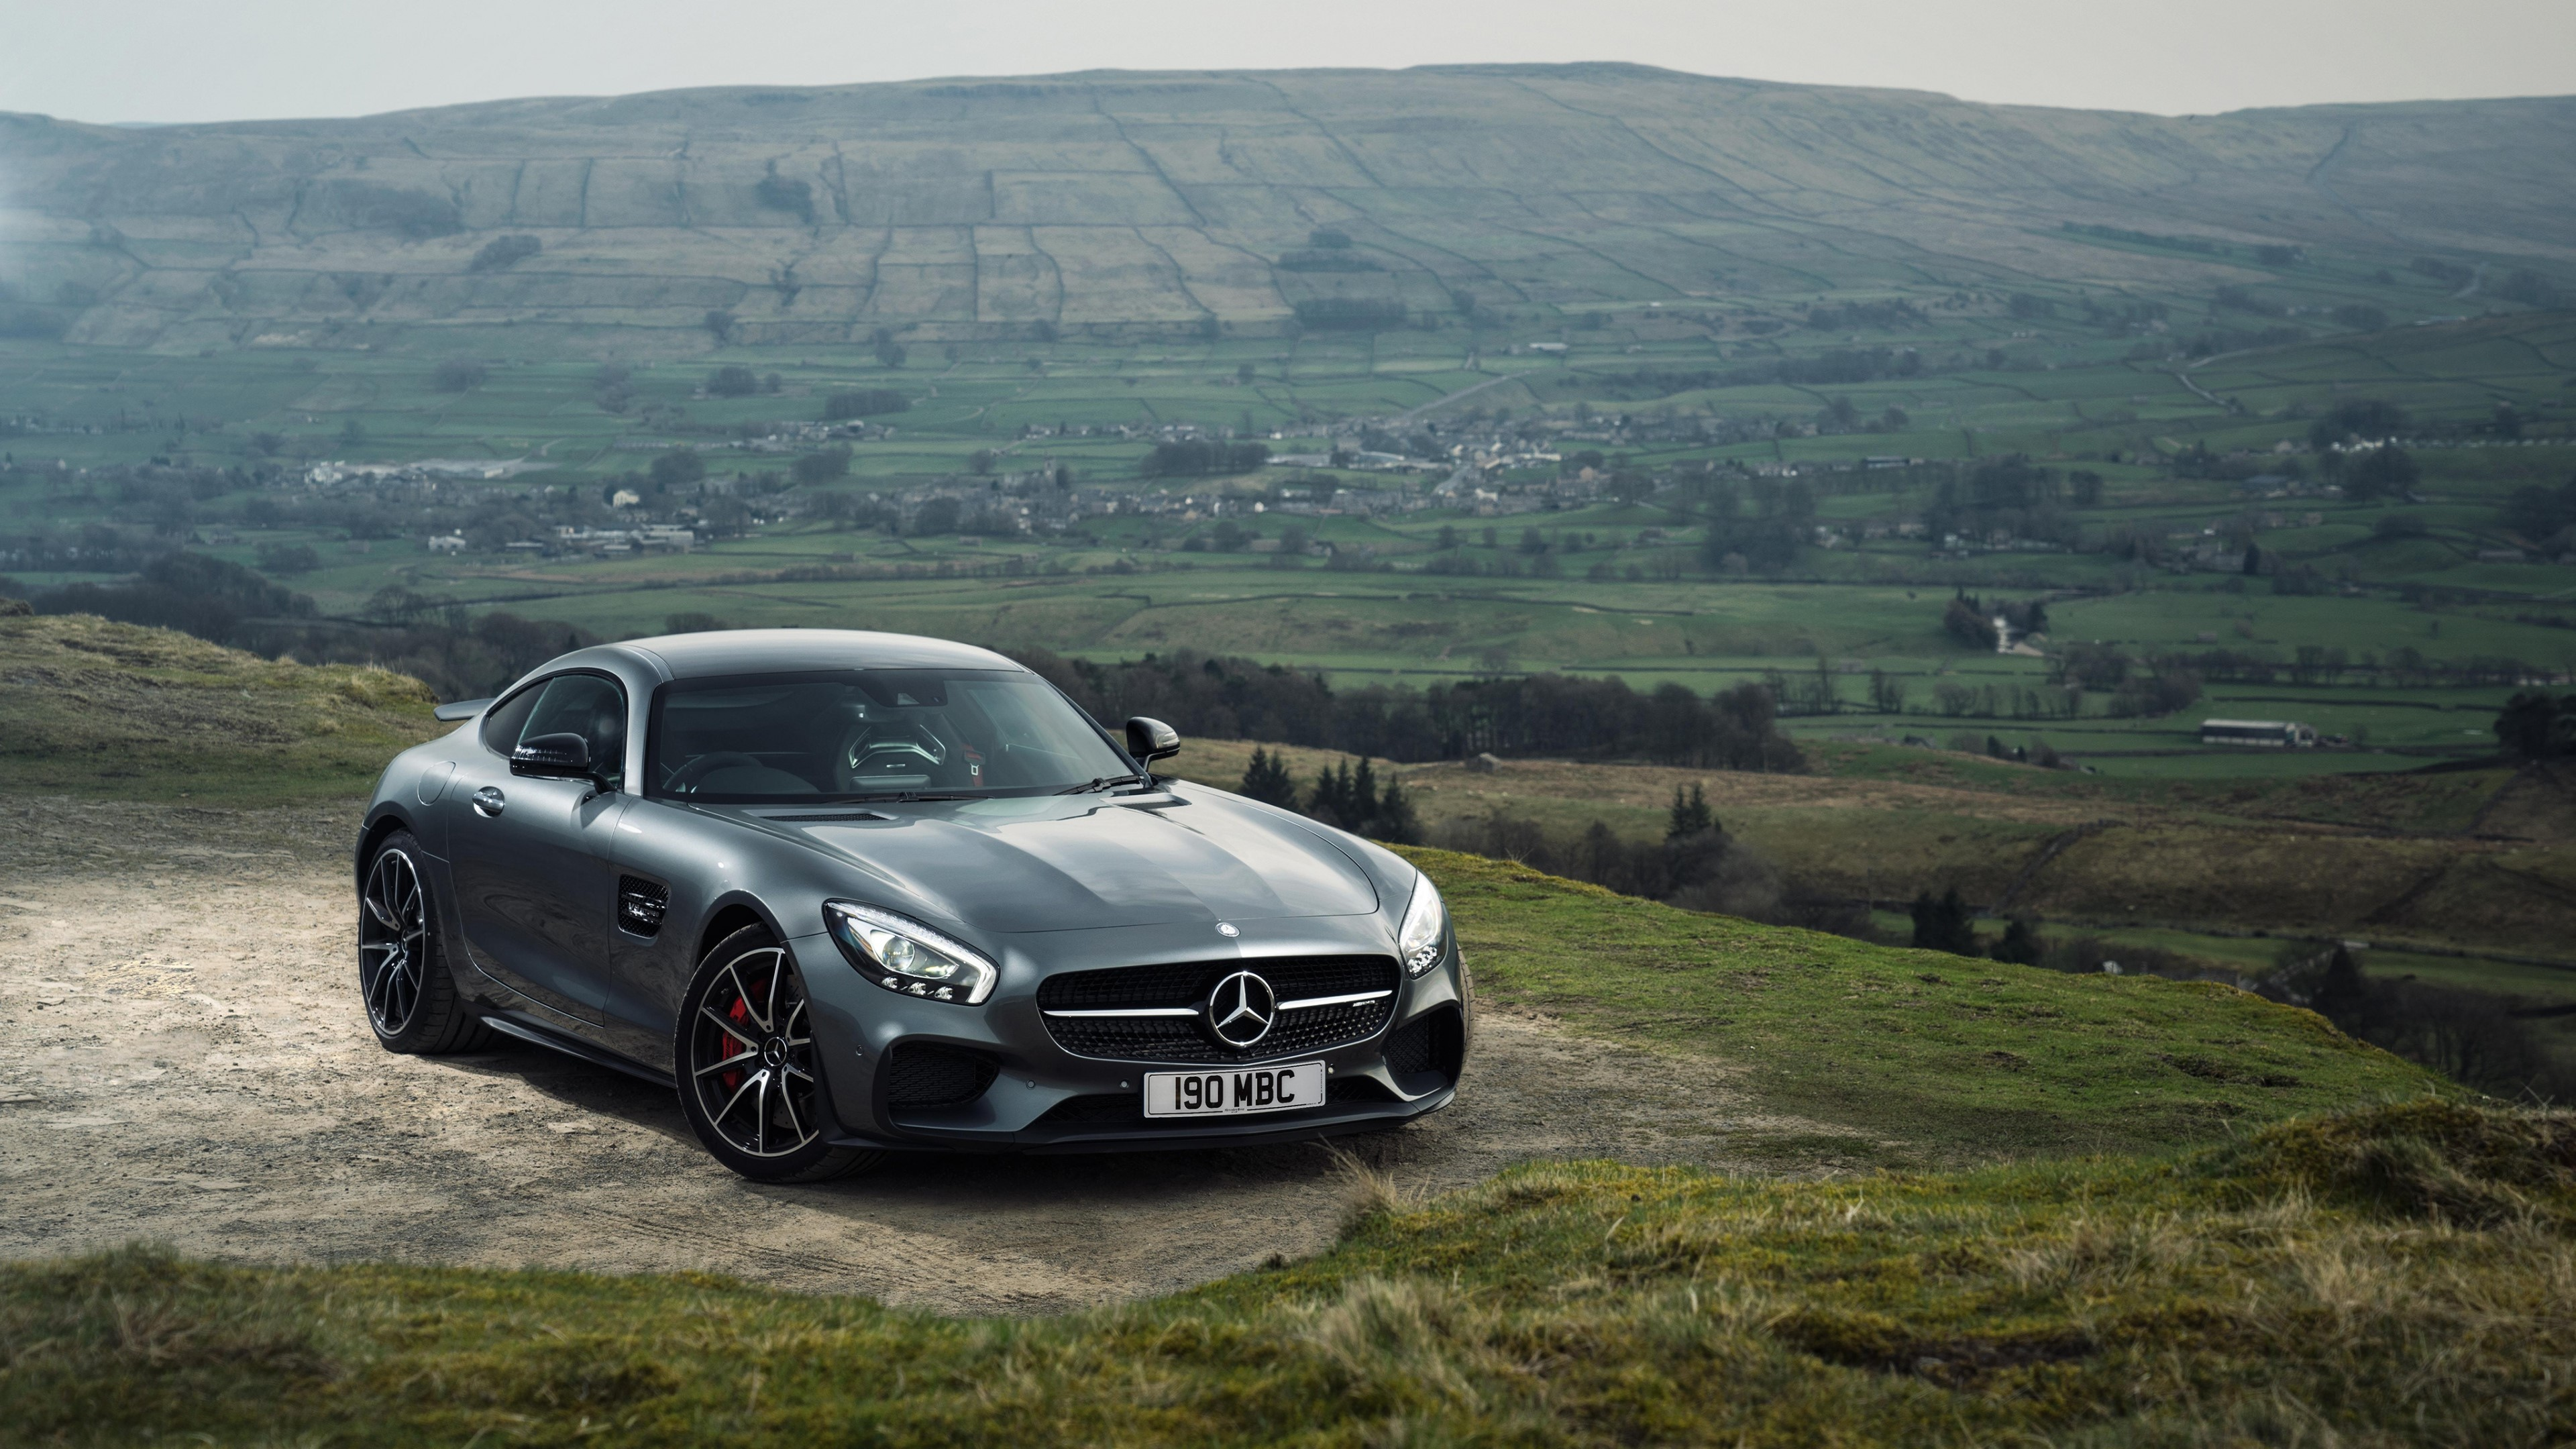 Wallpaper Mercedes AMG GT S gray in mountains